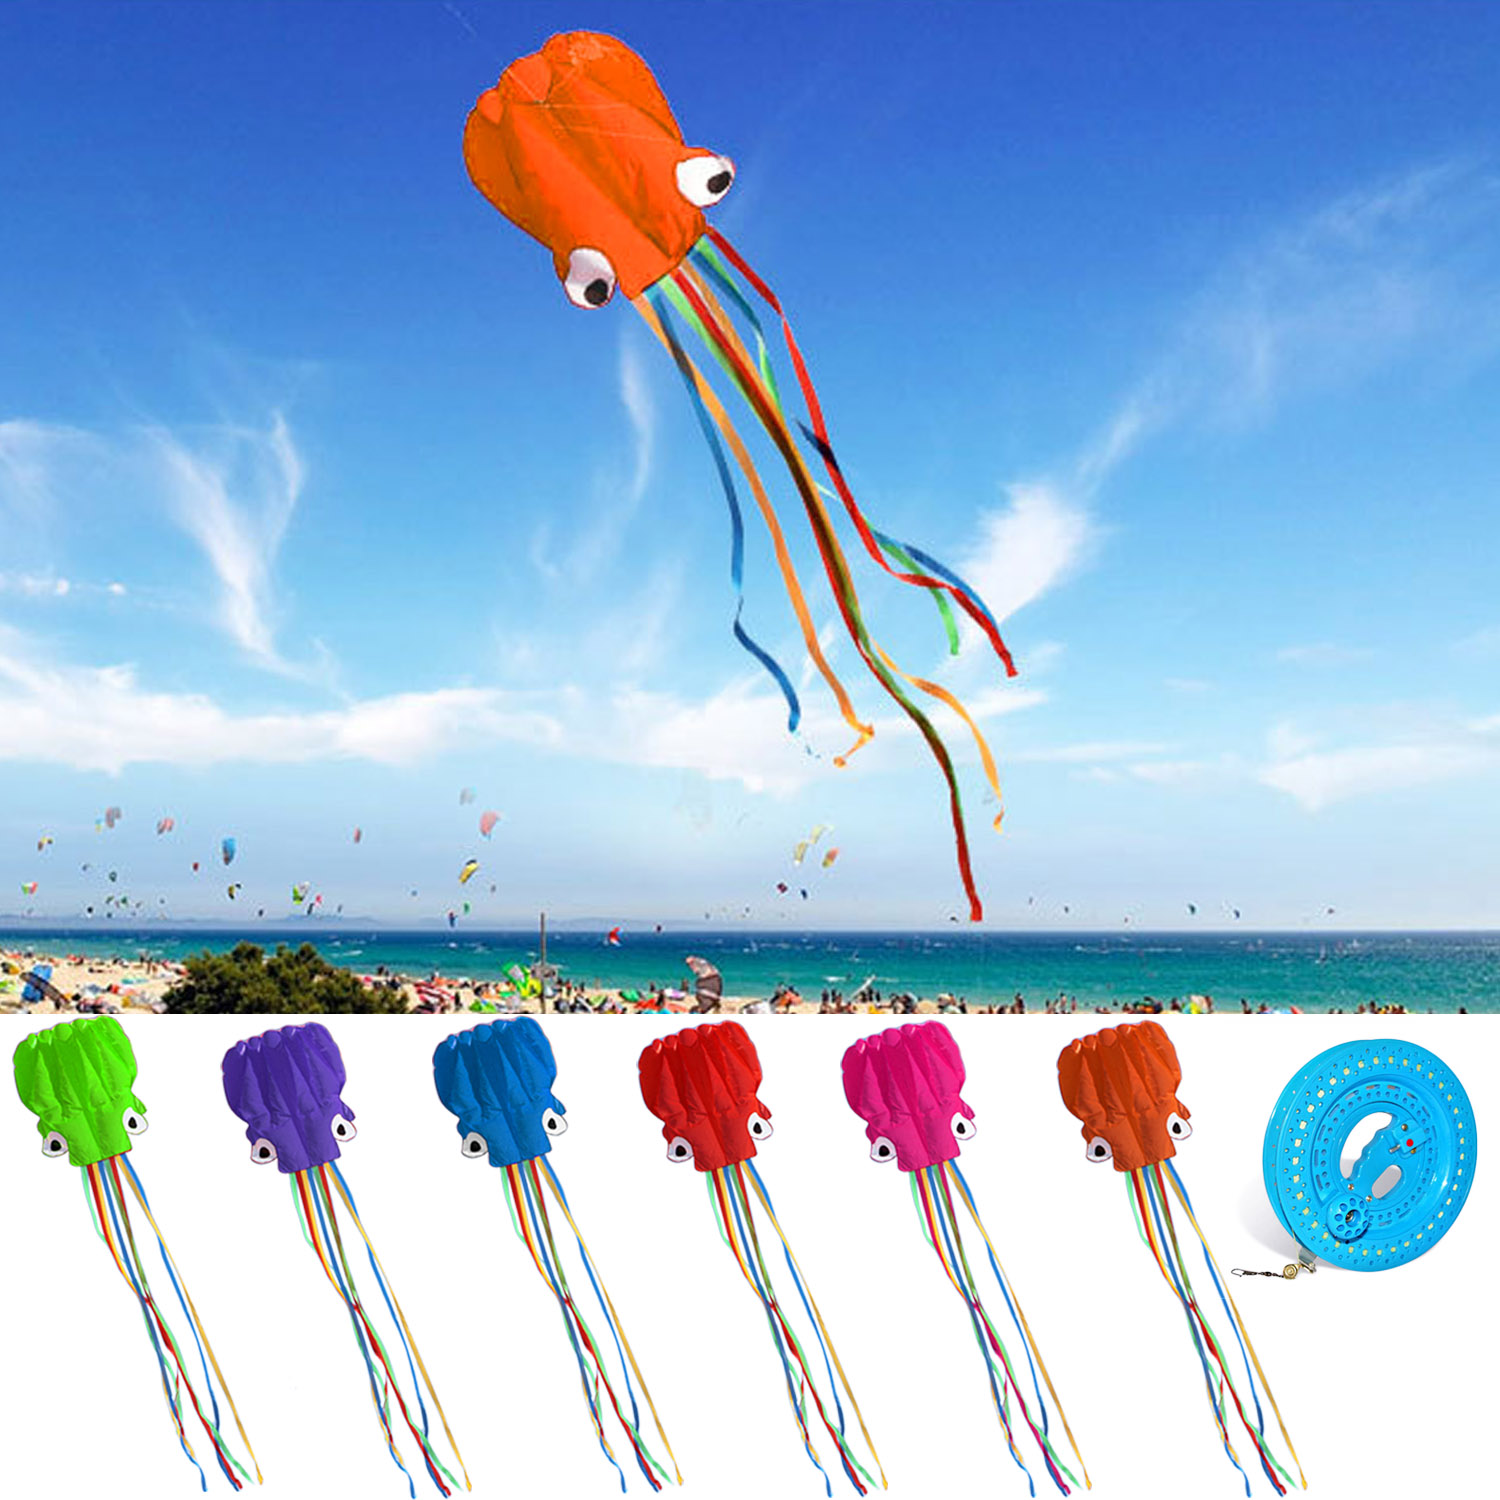 4m 13ft Length Large Soft Funny Cartoon Fish Octopus Kite Foldable Inflatable with 30m Flying String for Outdoor Sports 3m inflatable fish kite 4 colors beach kite flying for show outdoor activity